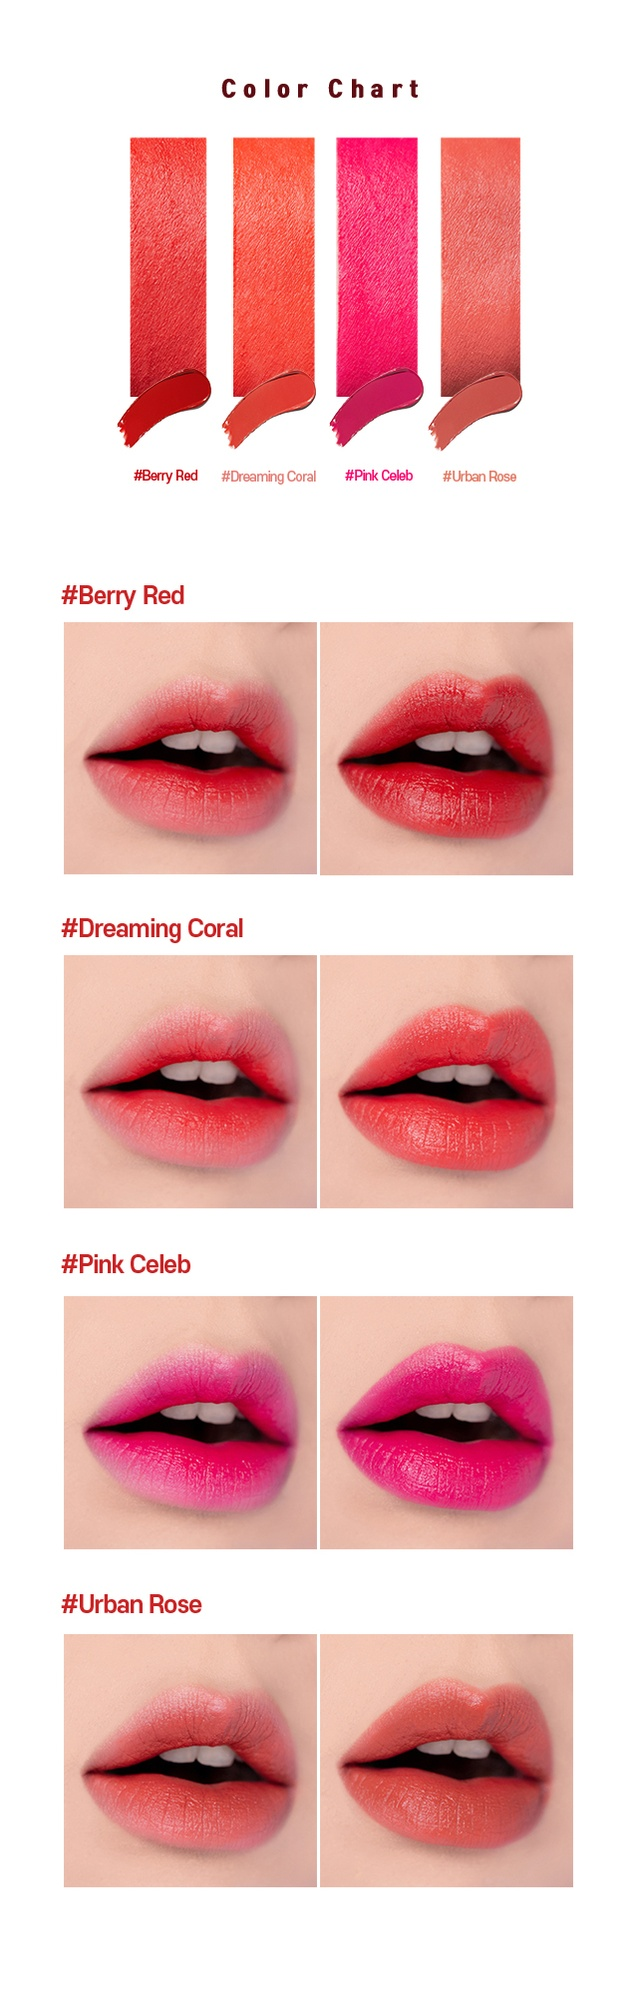 Brand: Milktouch - Everyday Fitting Lip Pencil